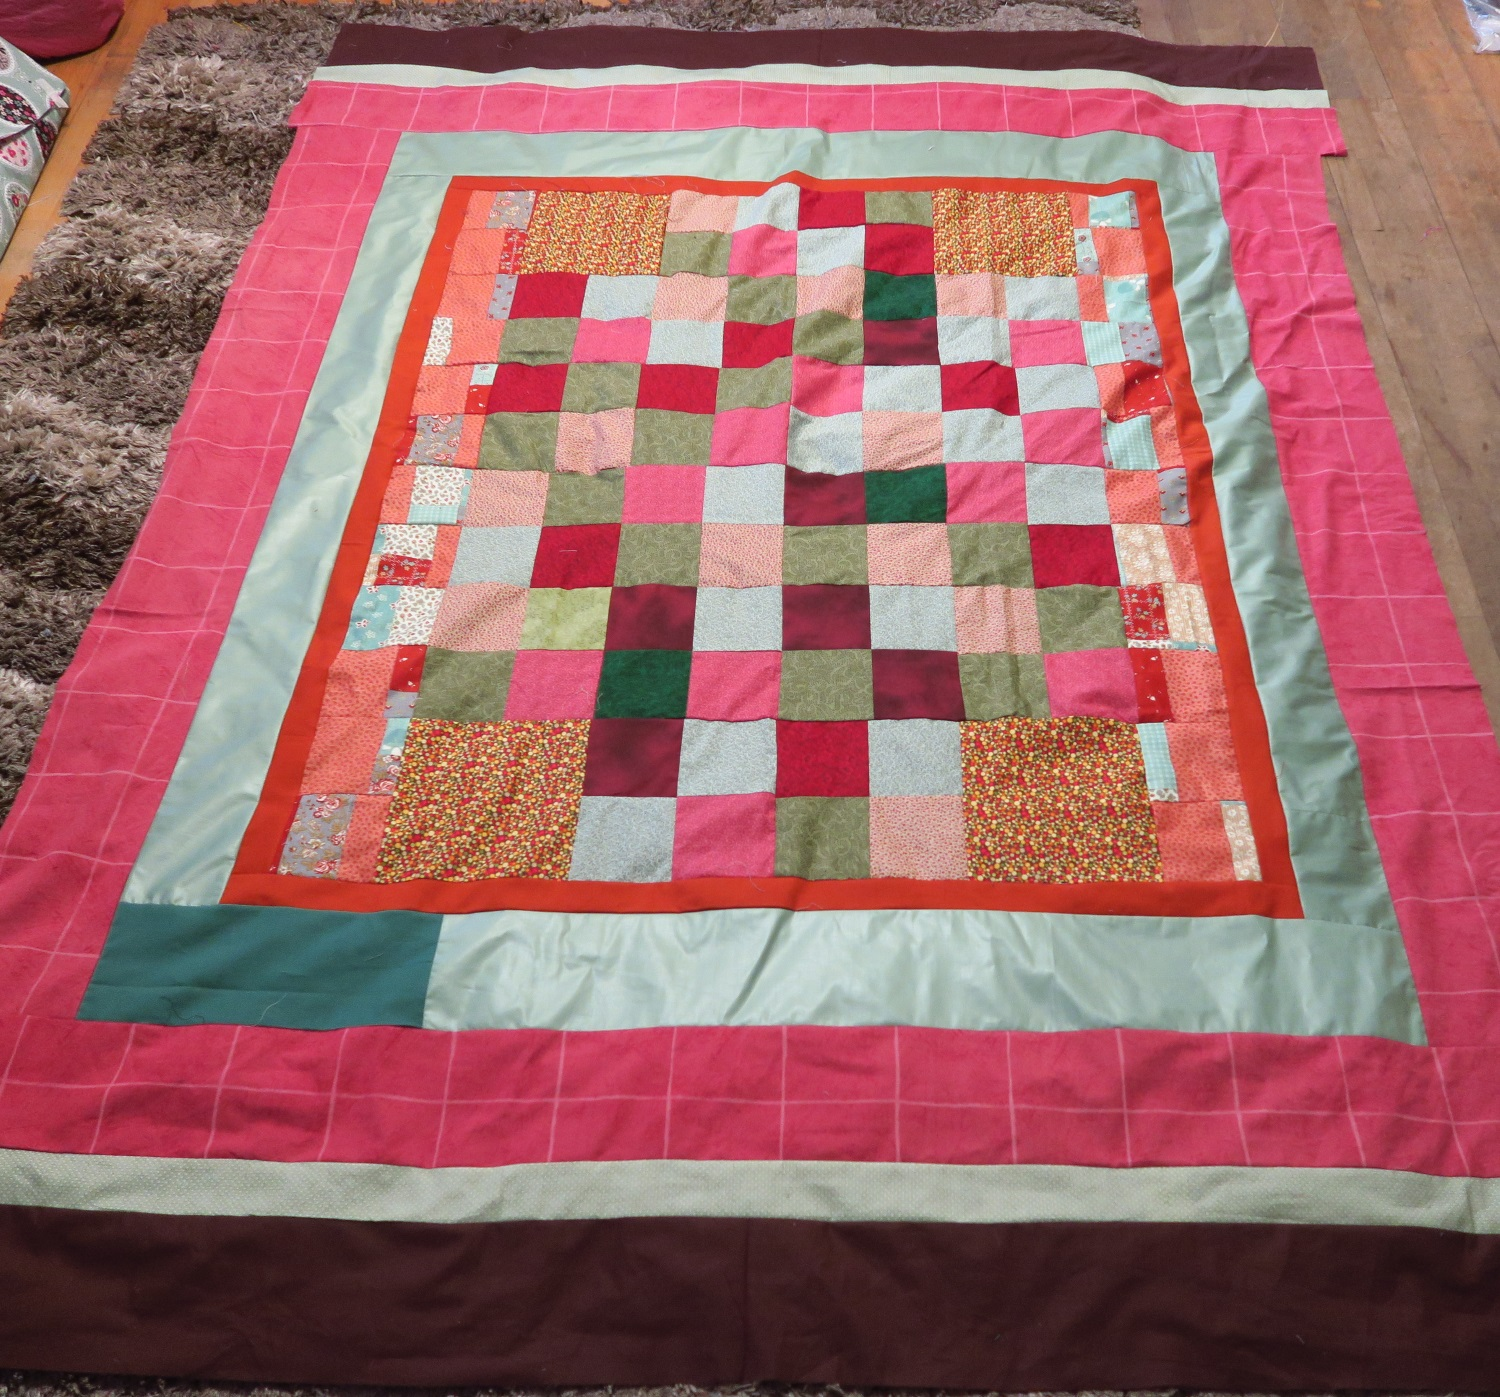 Fran made the center, I added the borders!